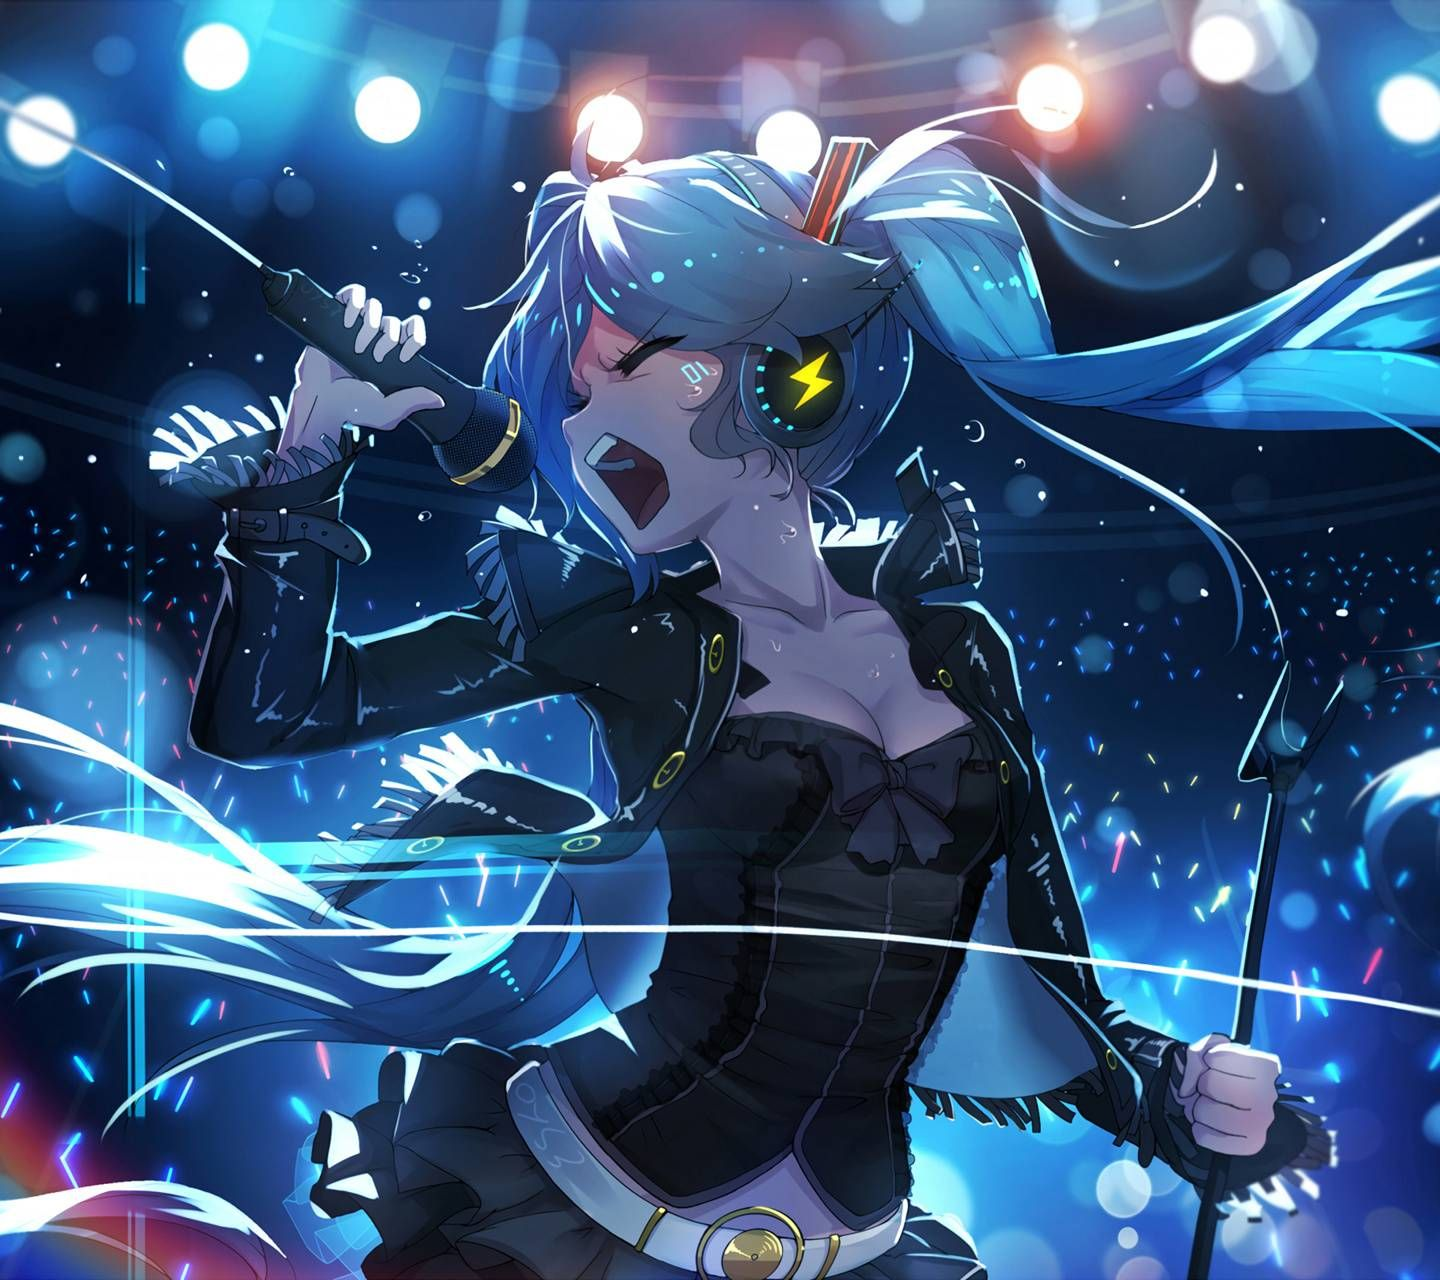 Download Hatsune Miku Live Wallpaper By Drewzydorf 8b Free On Zedge Now Browse Millions Of Popular Hatsune Wallpapers Hatsune Miku Android Wallpaper Miku Anime interactive wallpaper android